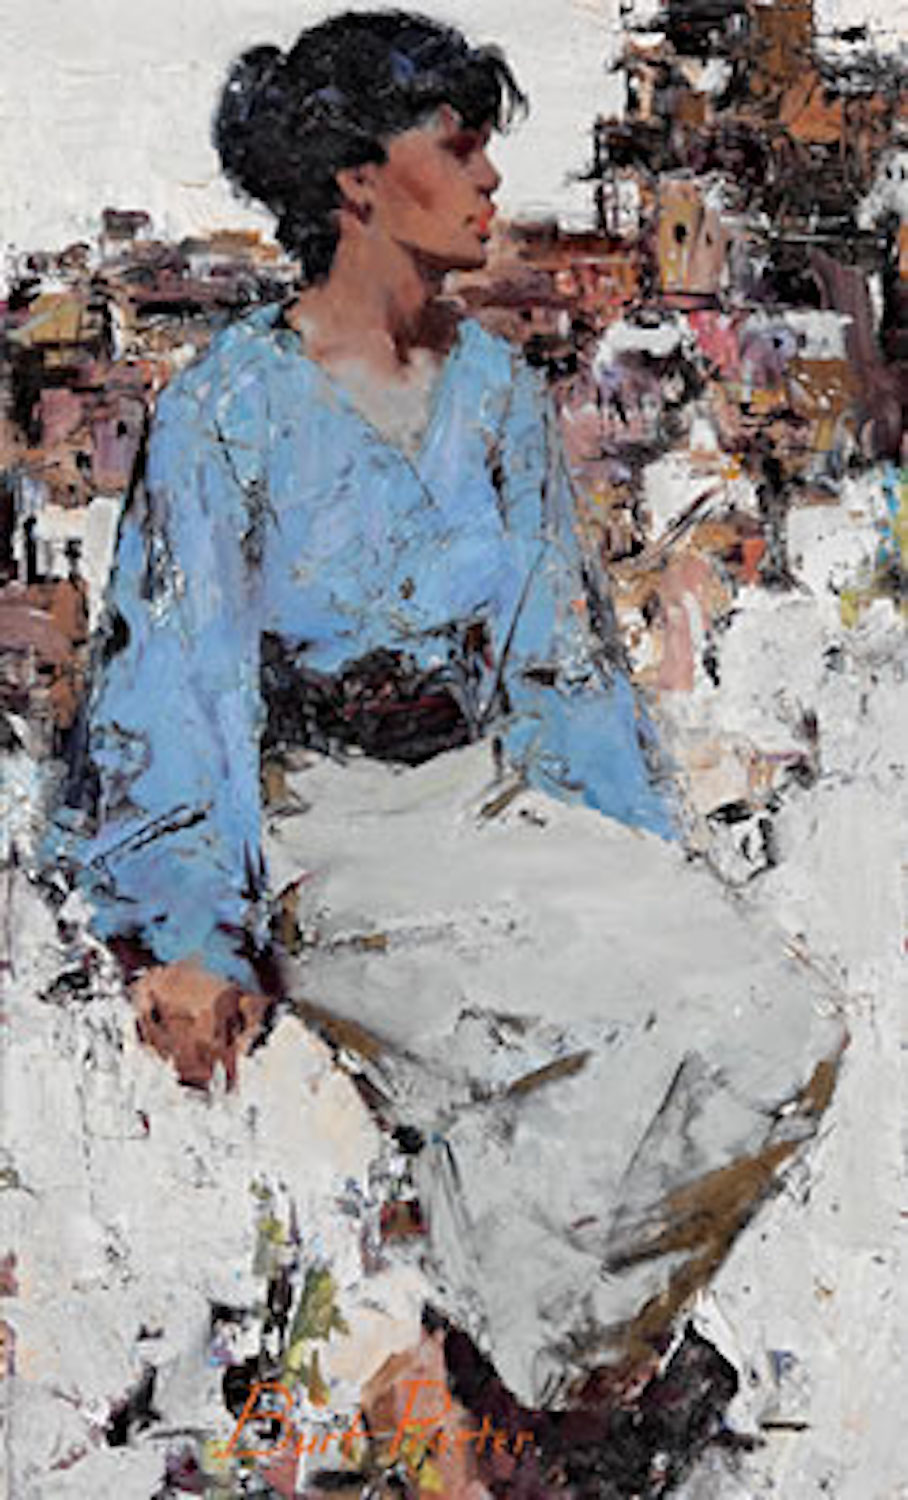 Seated Lady, 26 x 16, oil on board